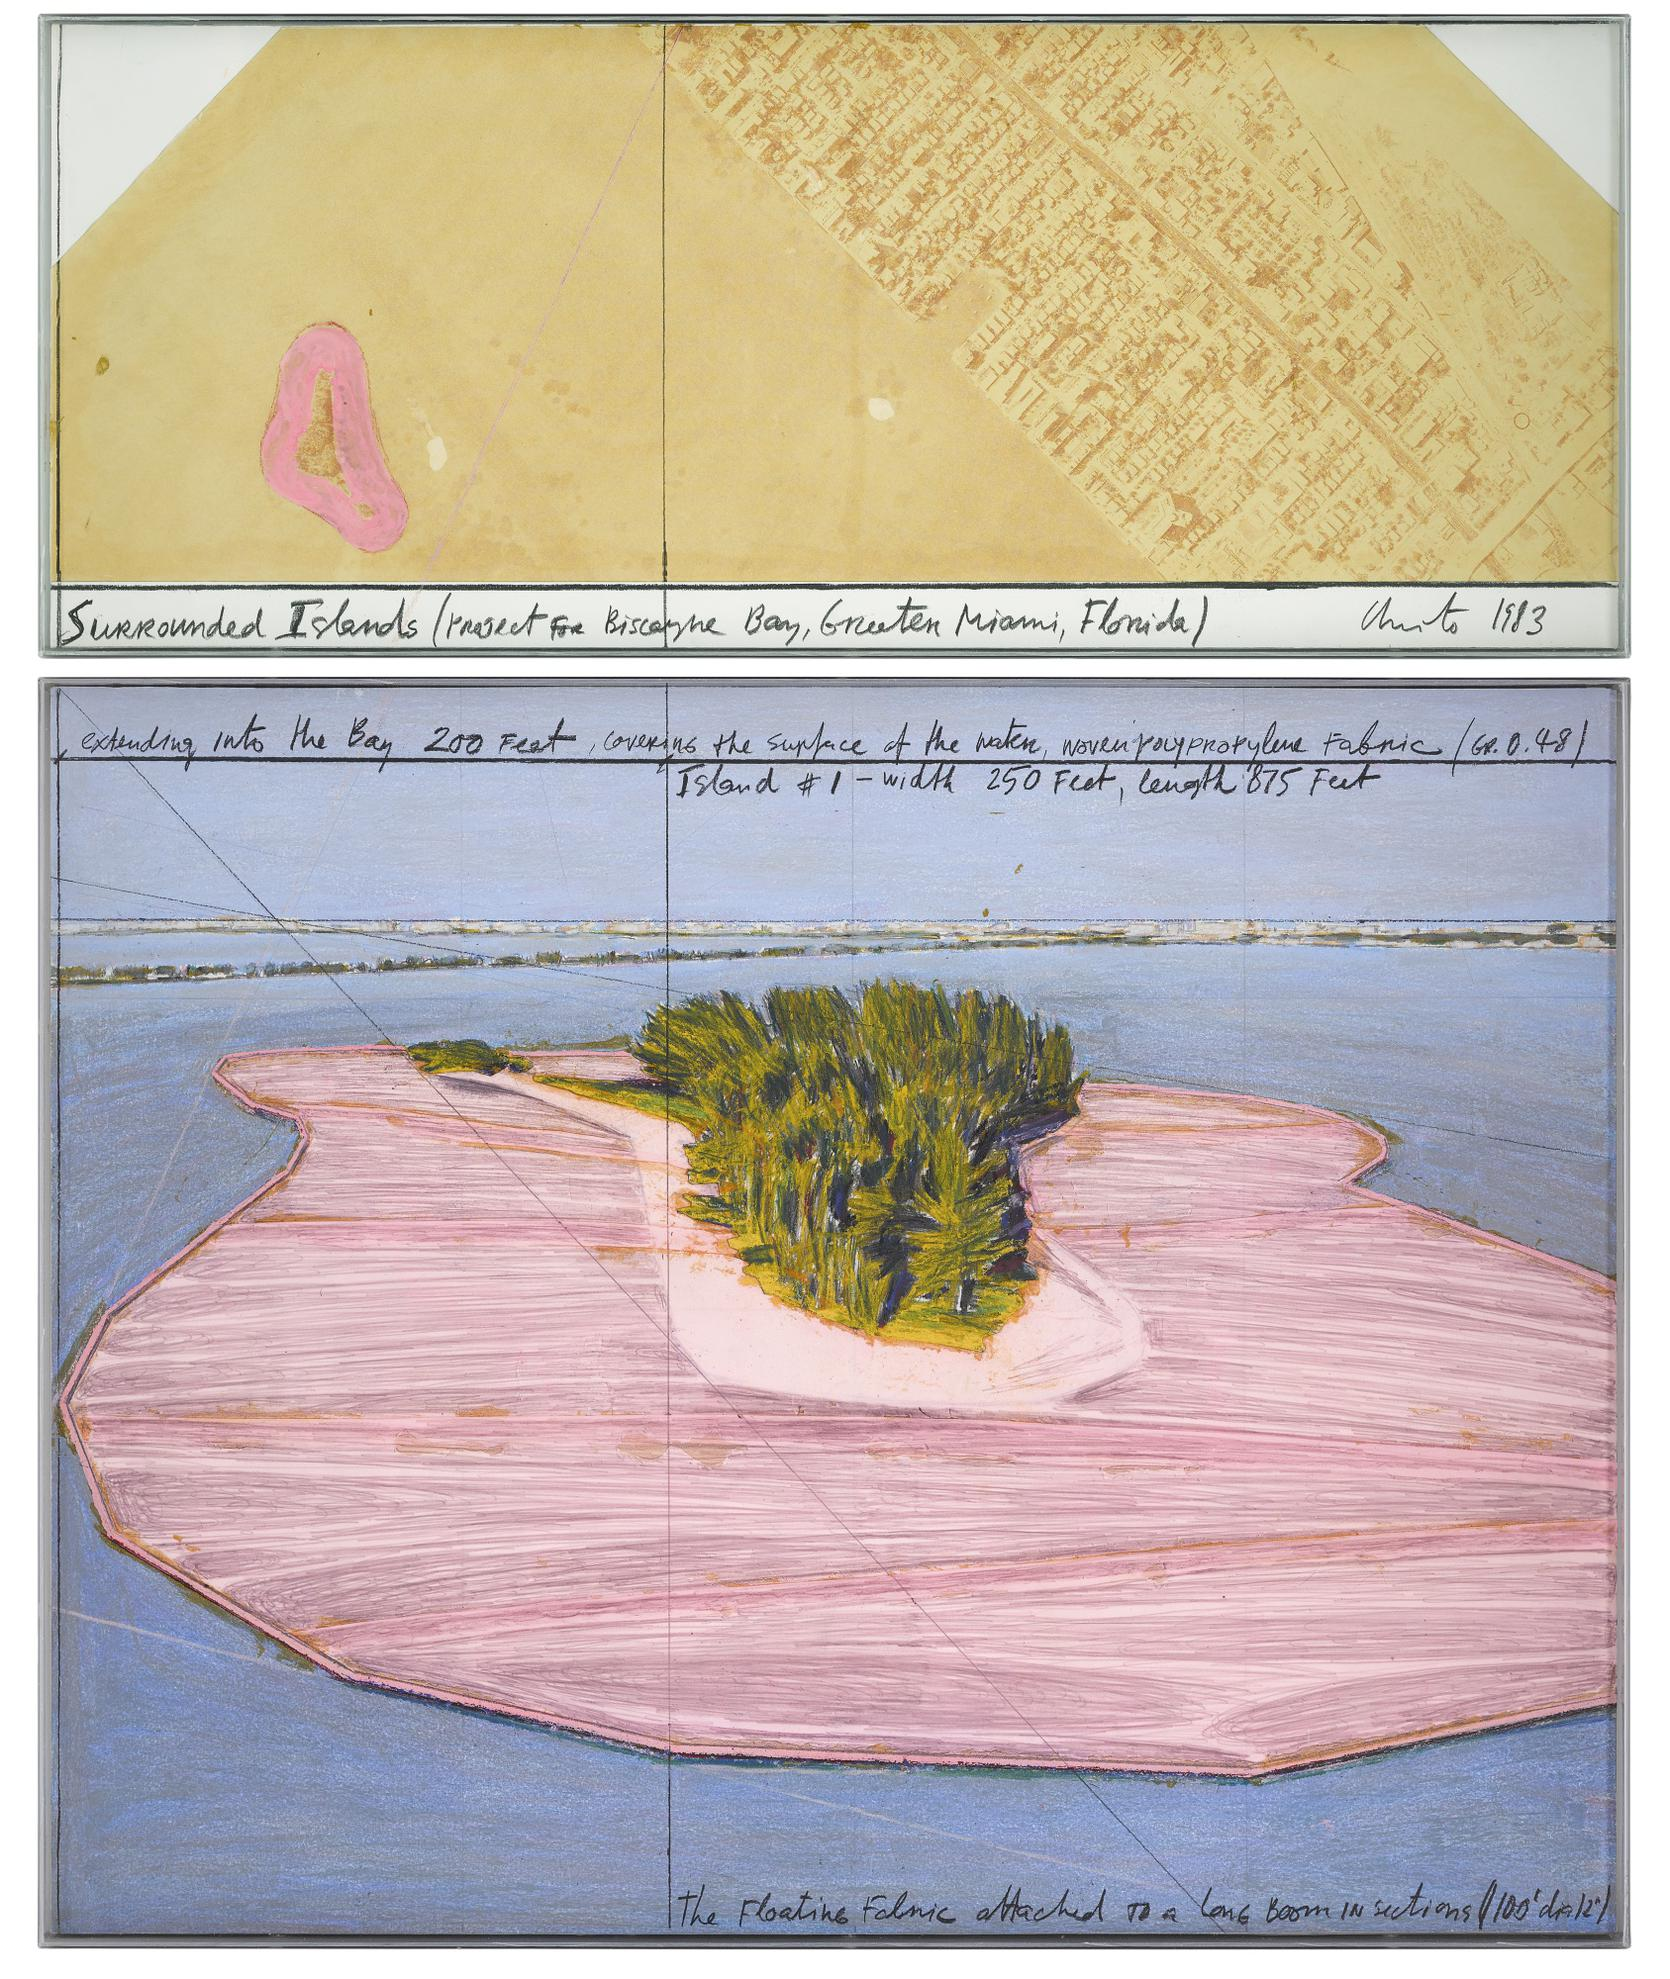 Christo And Jeanne-Claude - Surrounded Islands (Project For Biscayne Bay, Greater Miami, Florida)-1983